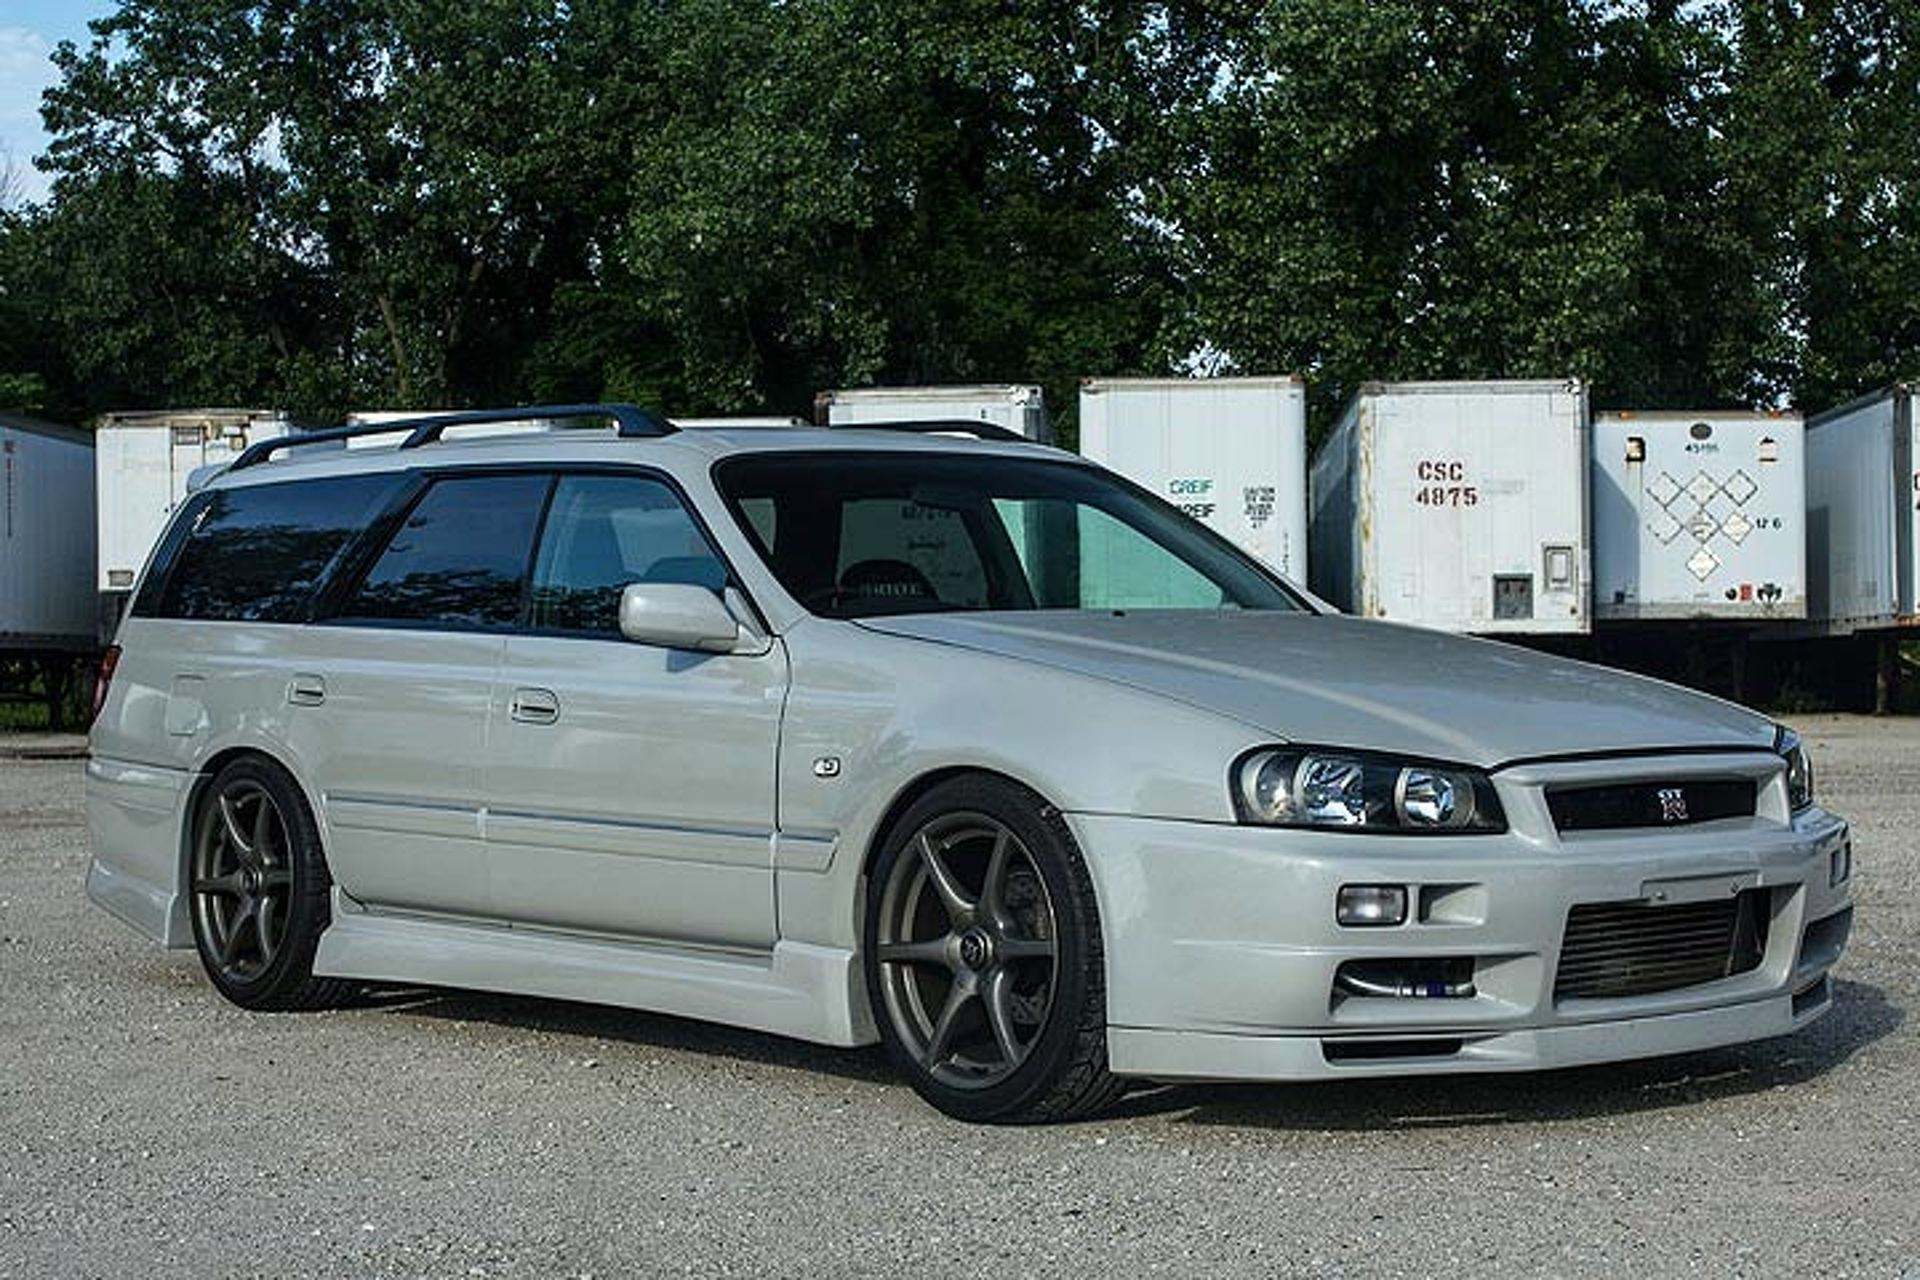 Nissan Gtr R34 For Sale >> It S Real This Nissan Gt R Wagon Is Wild And For Sale In The Usa